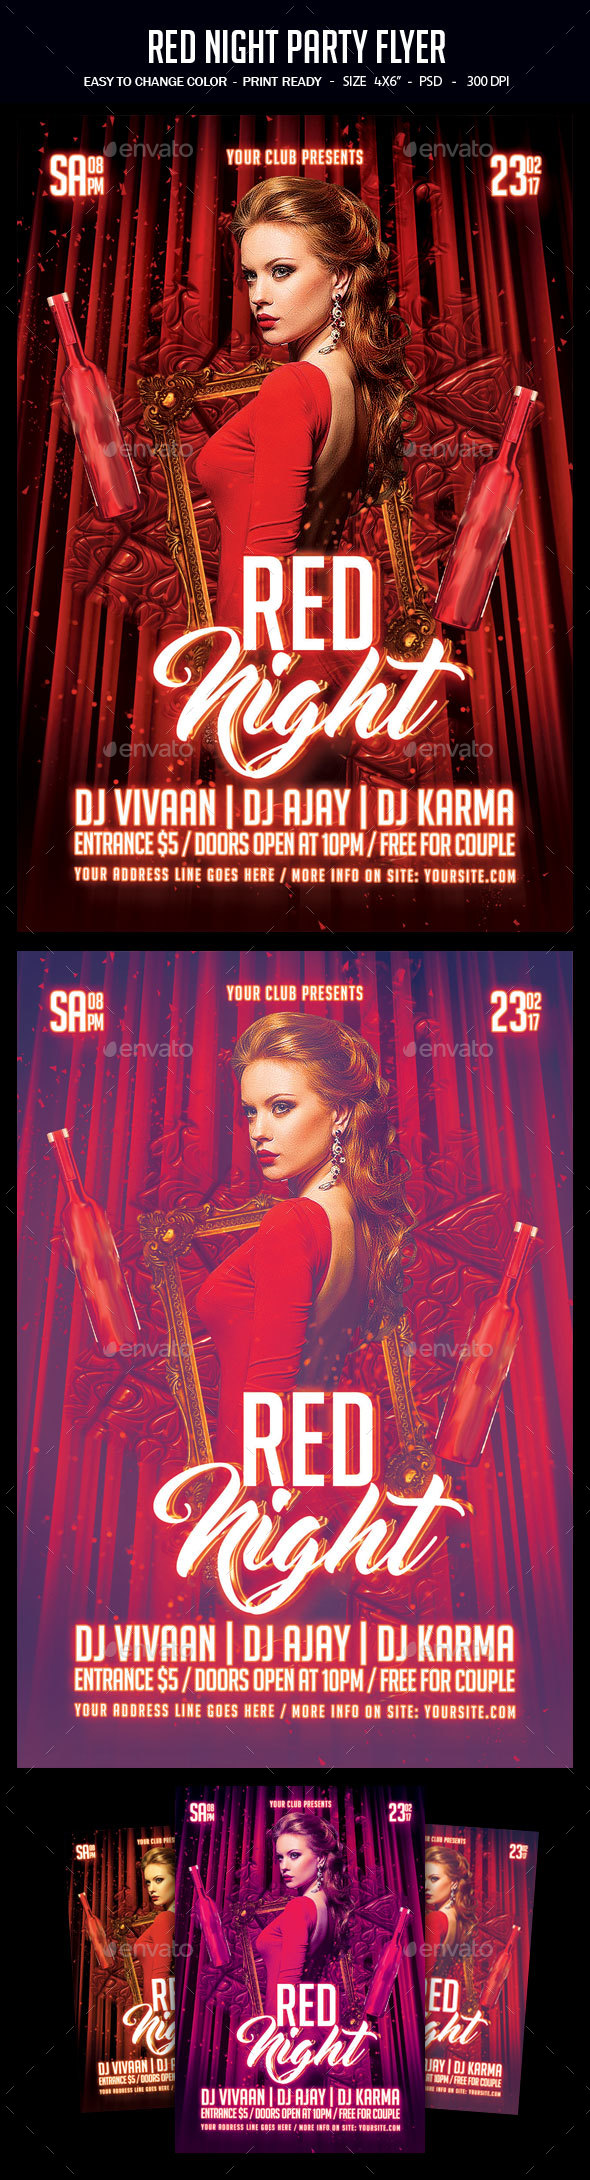 Red Night Party Flyer - Clubs & Parties Events